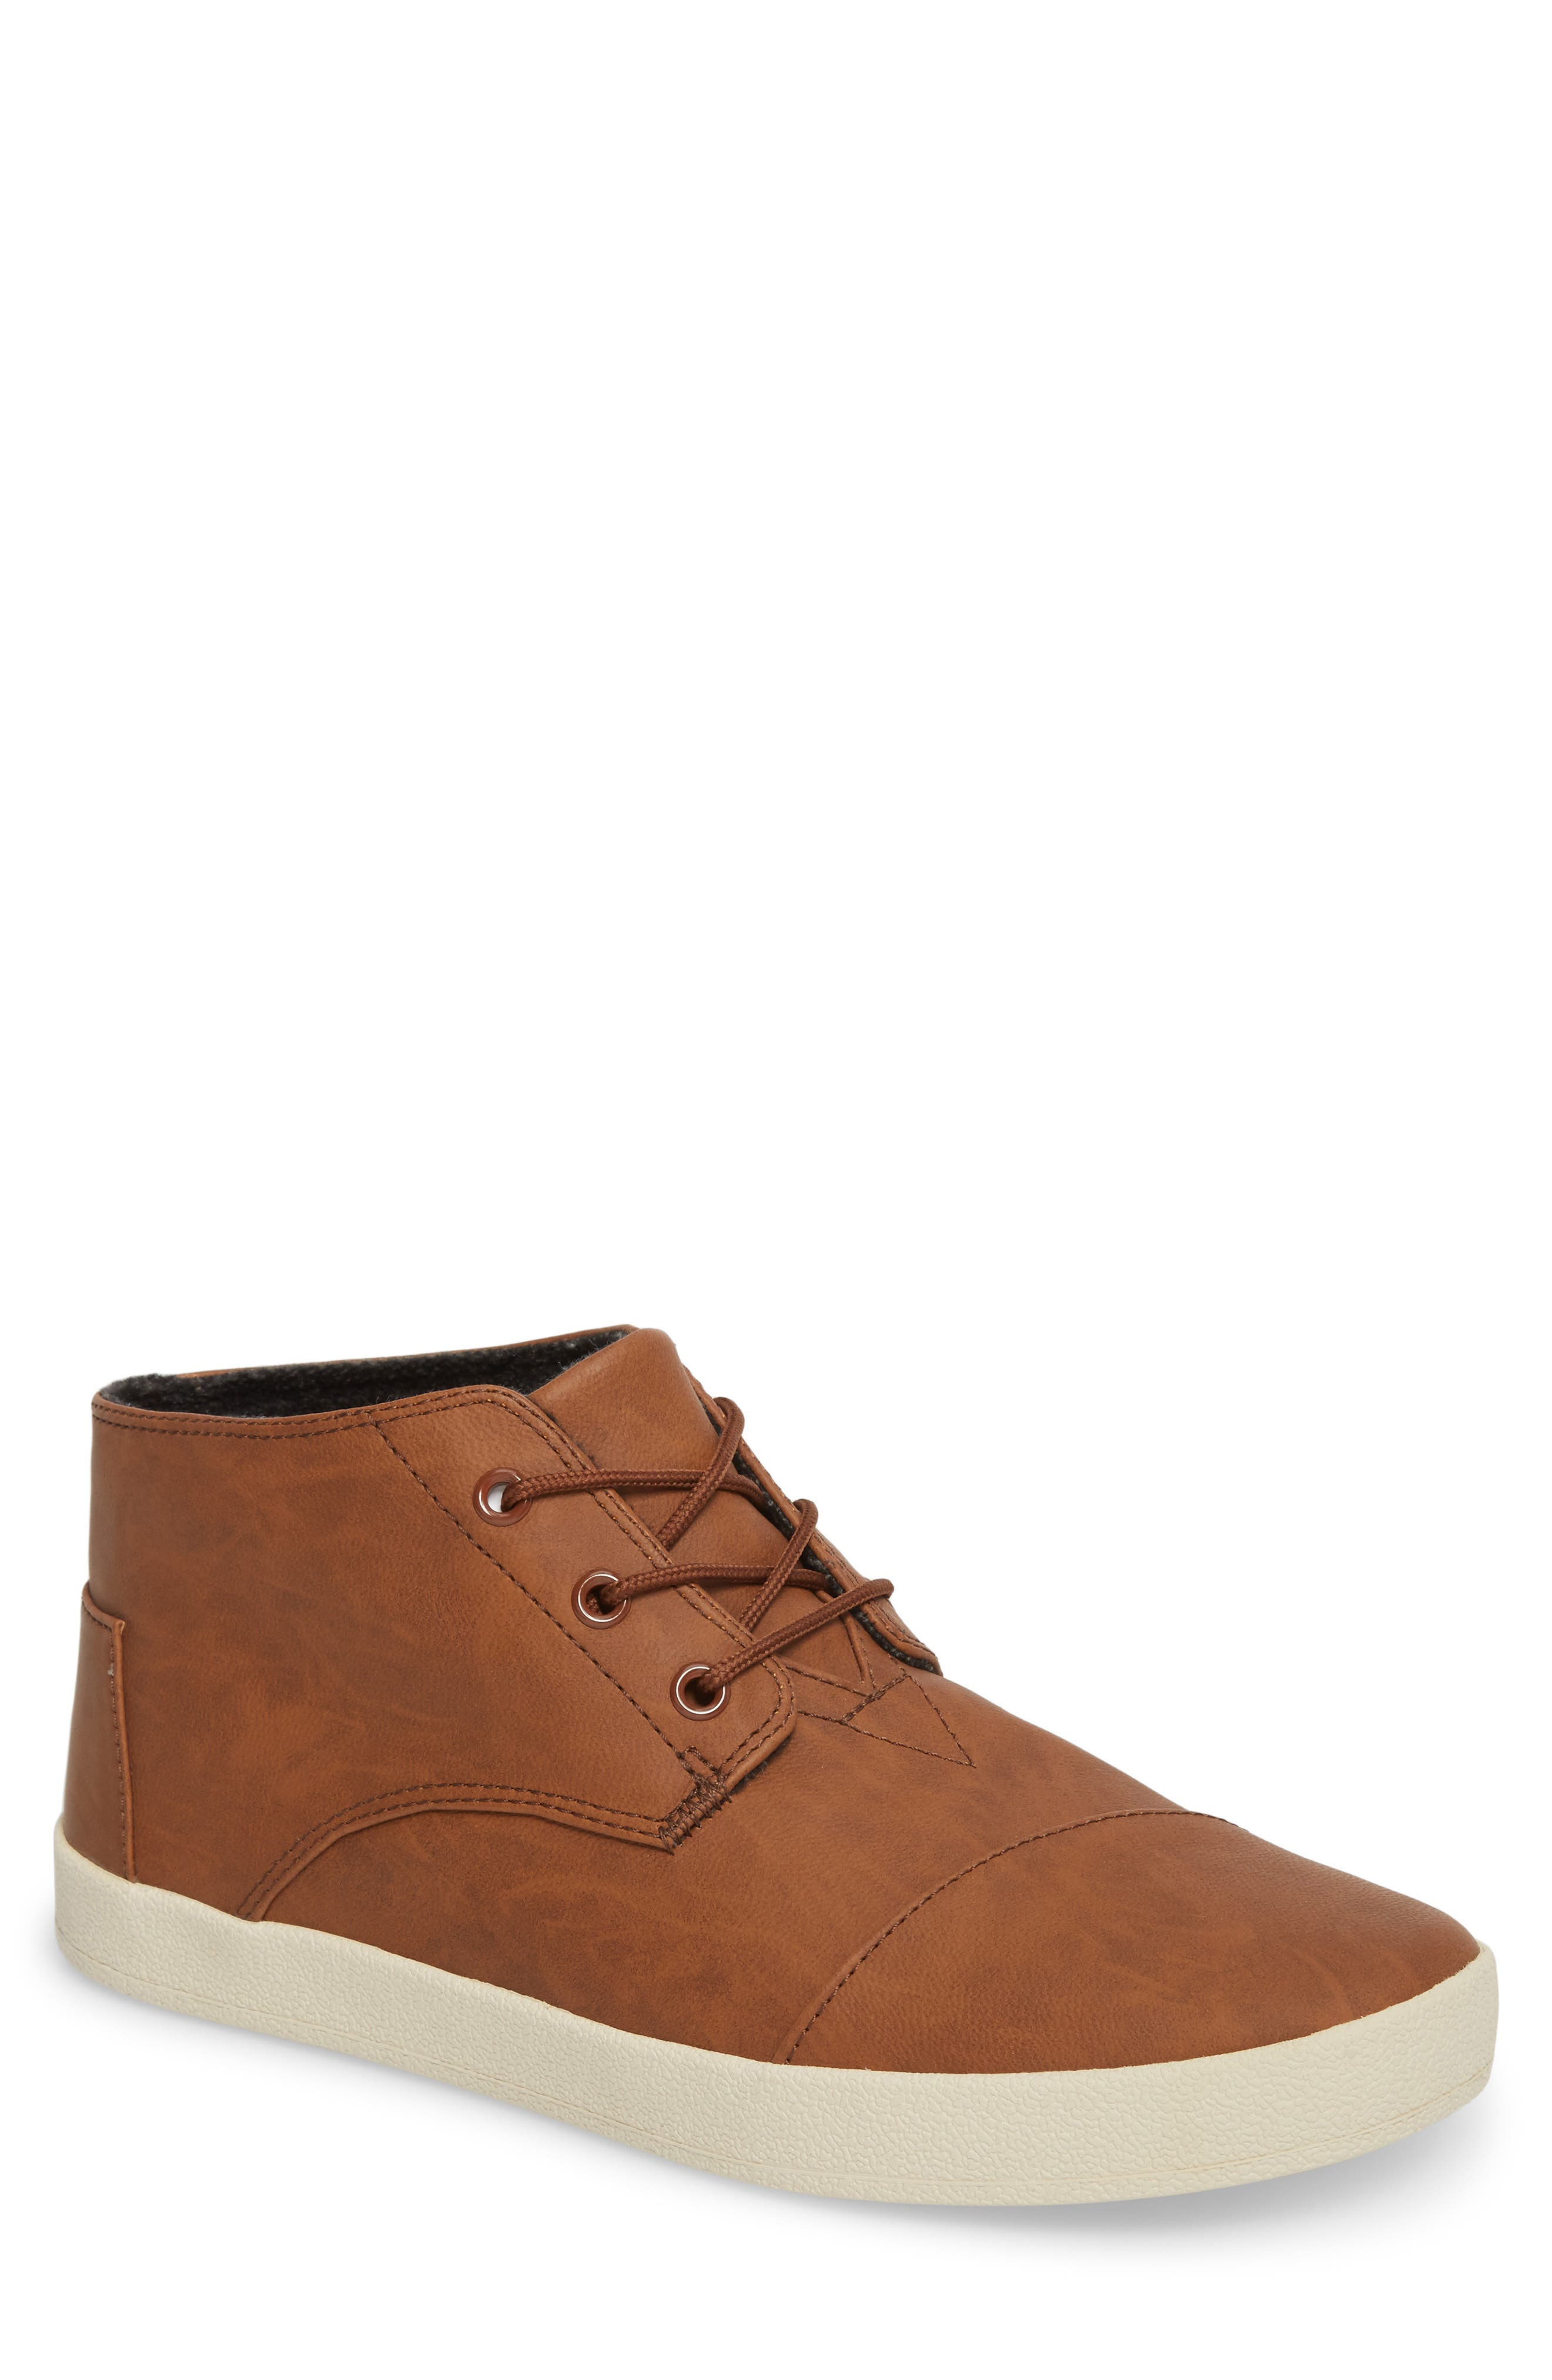 Paseo Mid Sneaker,                             Main thumbnail 1, color,                             Dark Earth Brown